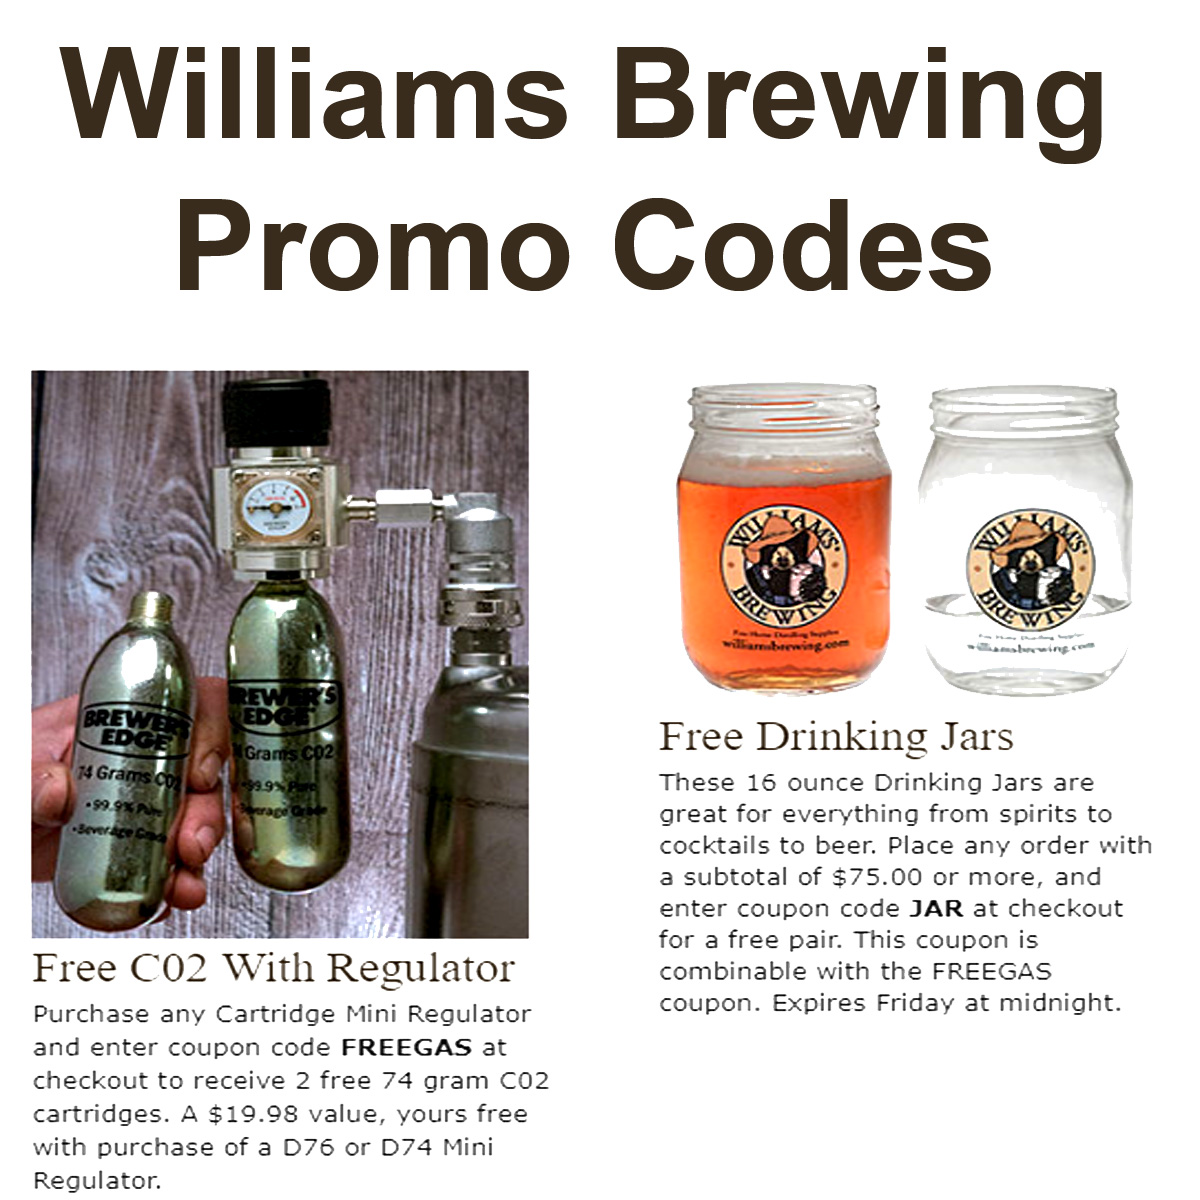 Williams Brewing Two WilliamsBrewing.com Promo Codes for FREE CO2 and FREE Drinking Glasses With These Williams Brewing Promo Codes Coupon Code